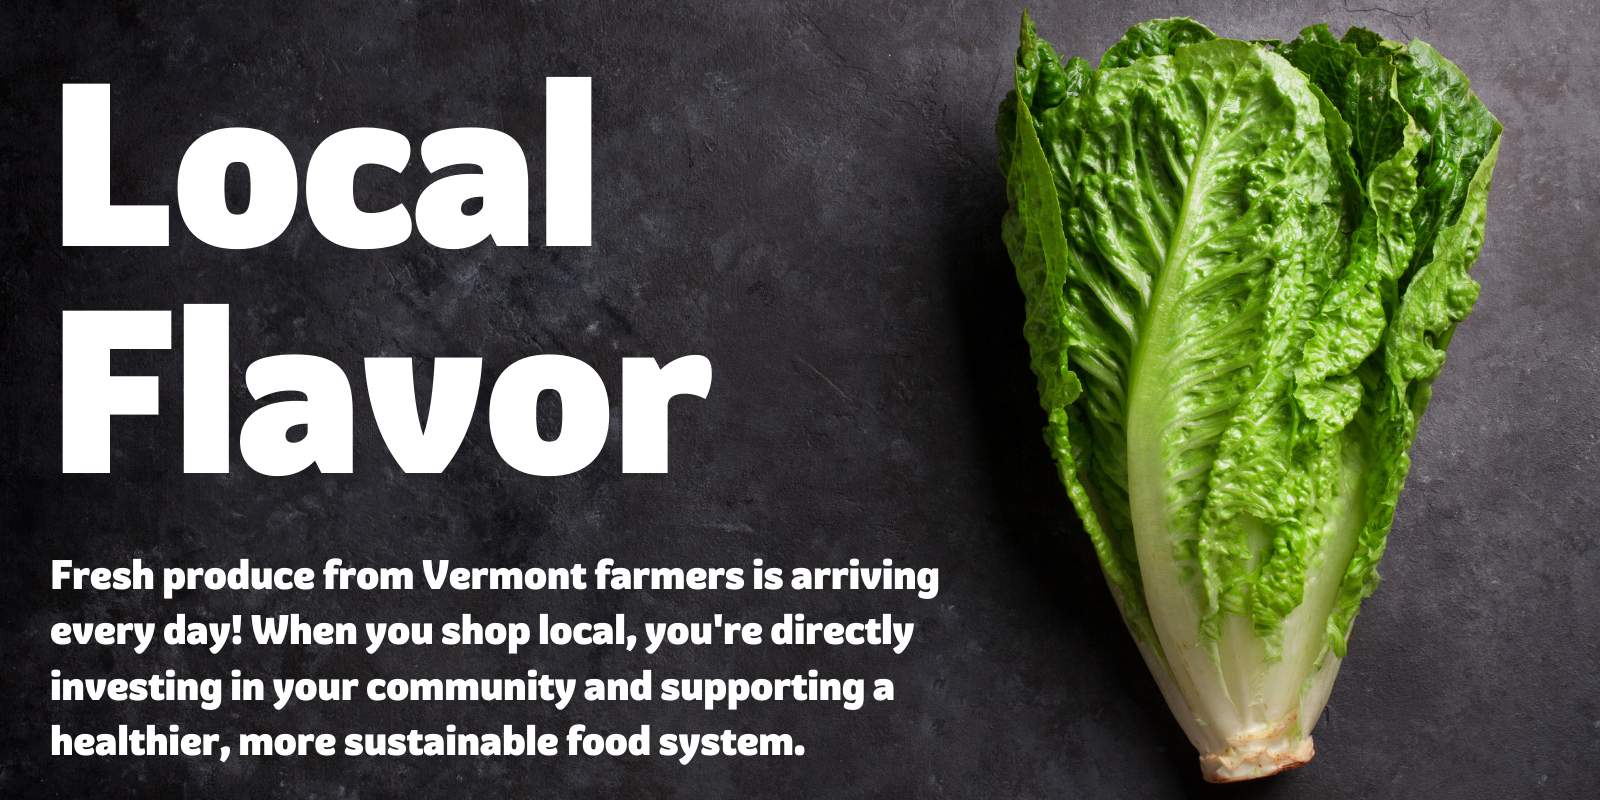 [IMAGE OF ROMAINE LETTUCE ON SLATE BACKGROUND]  Local Flavor Fresh produce from Vermont farmers is arriving every day! When you shop local, you're directly investing in your community and supporting a healthier, more sustainable food system.